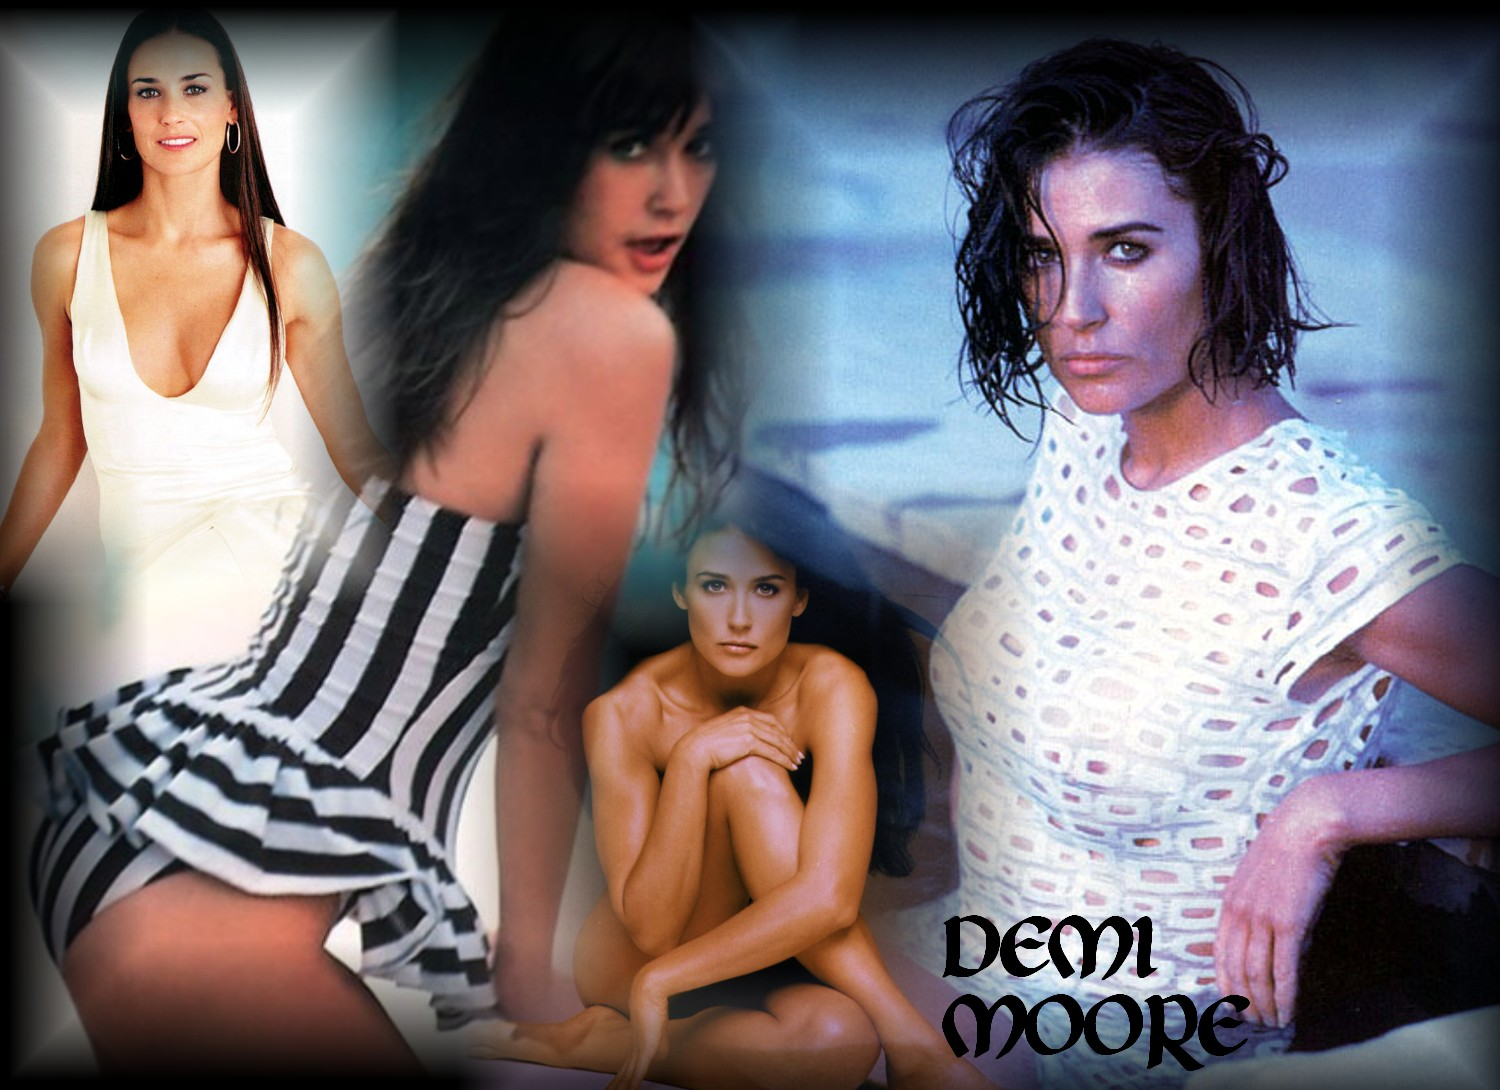 Celebrity wallpapers / Demi moore wallpapers / Demi moore wallpapers (8107)